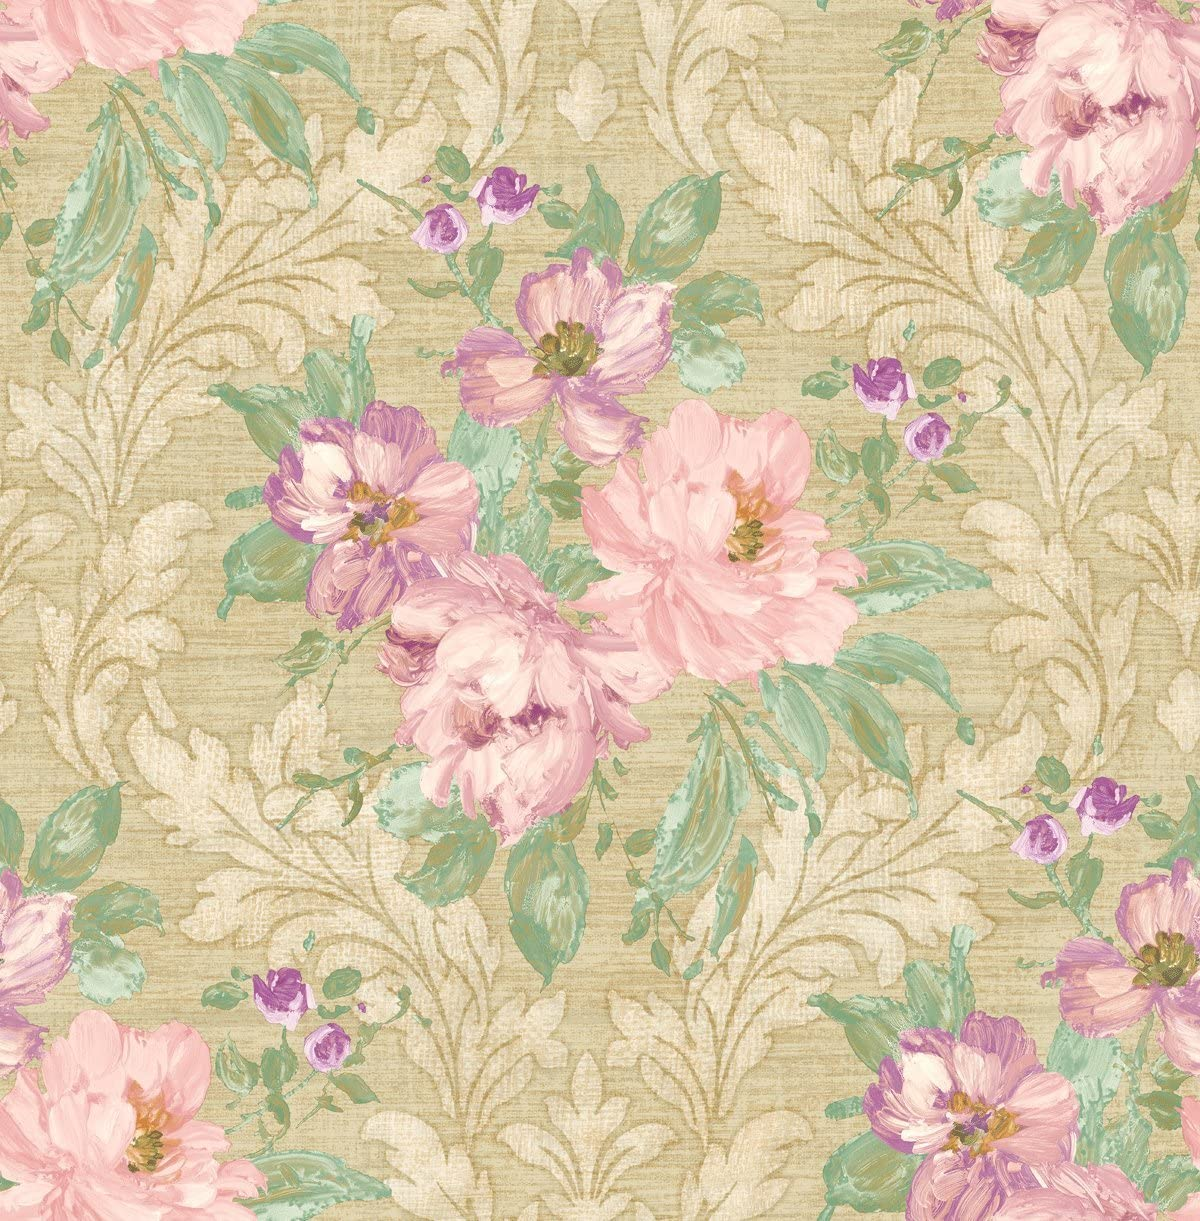 Wallpaper Floral Pink Floral Wallpaper Chinoiserie Wallpaper